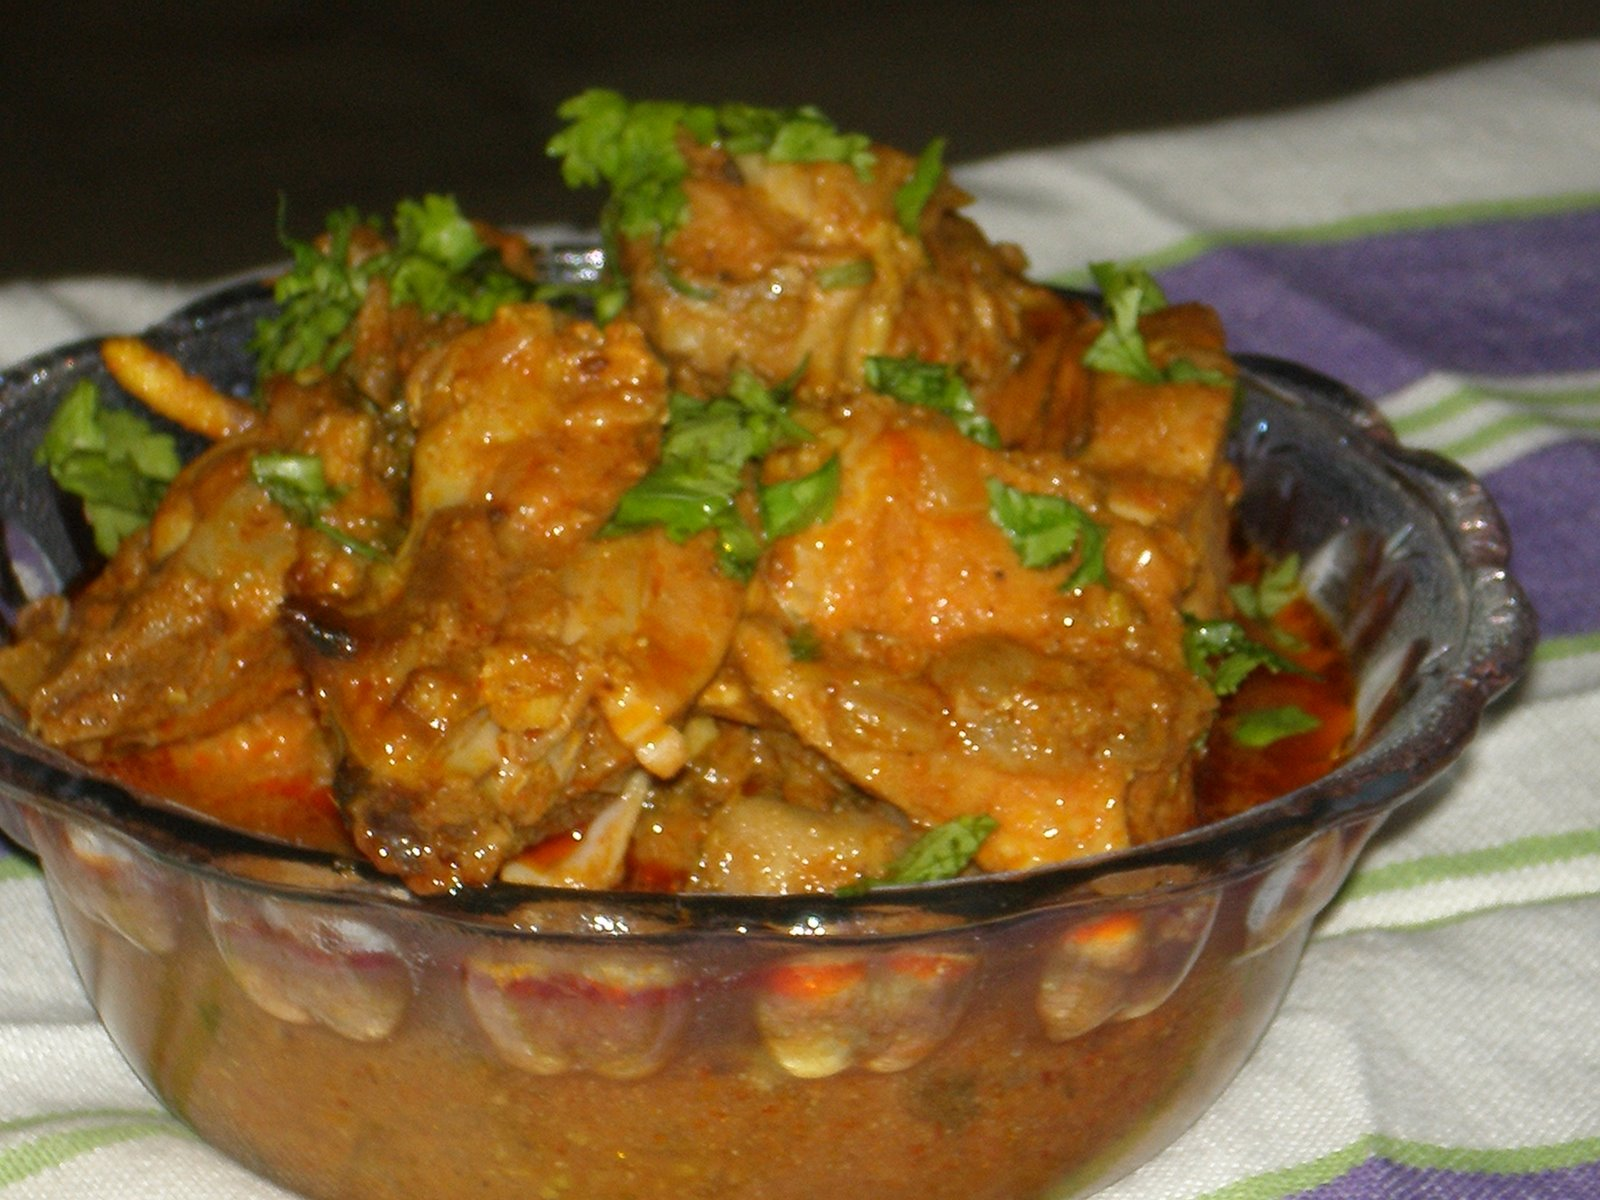 ANGLO-INDIAN FOOD - By Bridget White-Kumar: SIMPLE CHICKEN CURRY